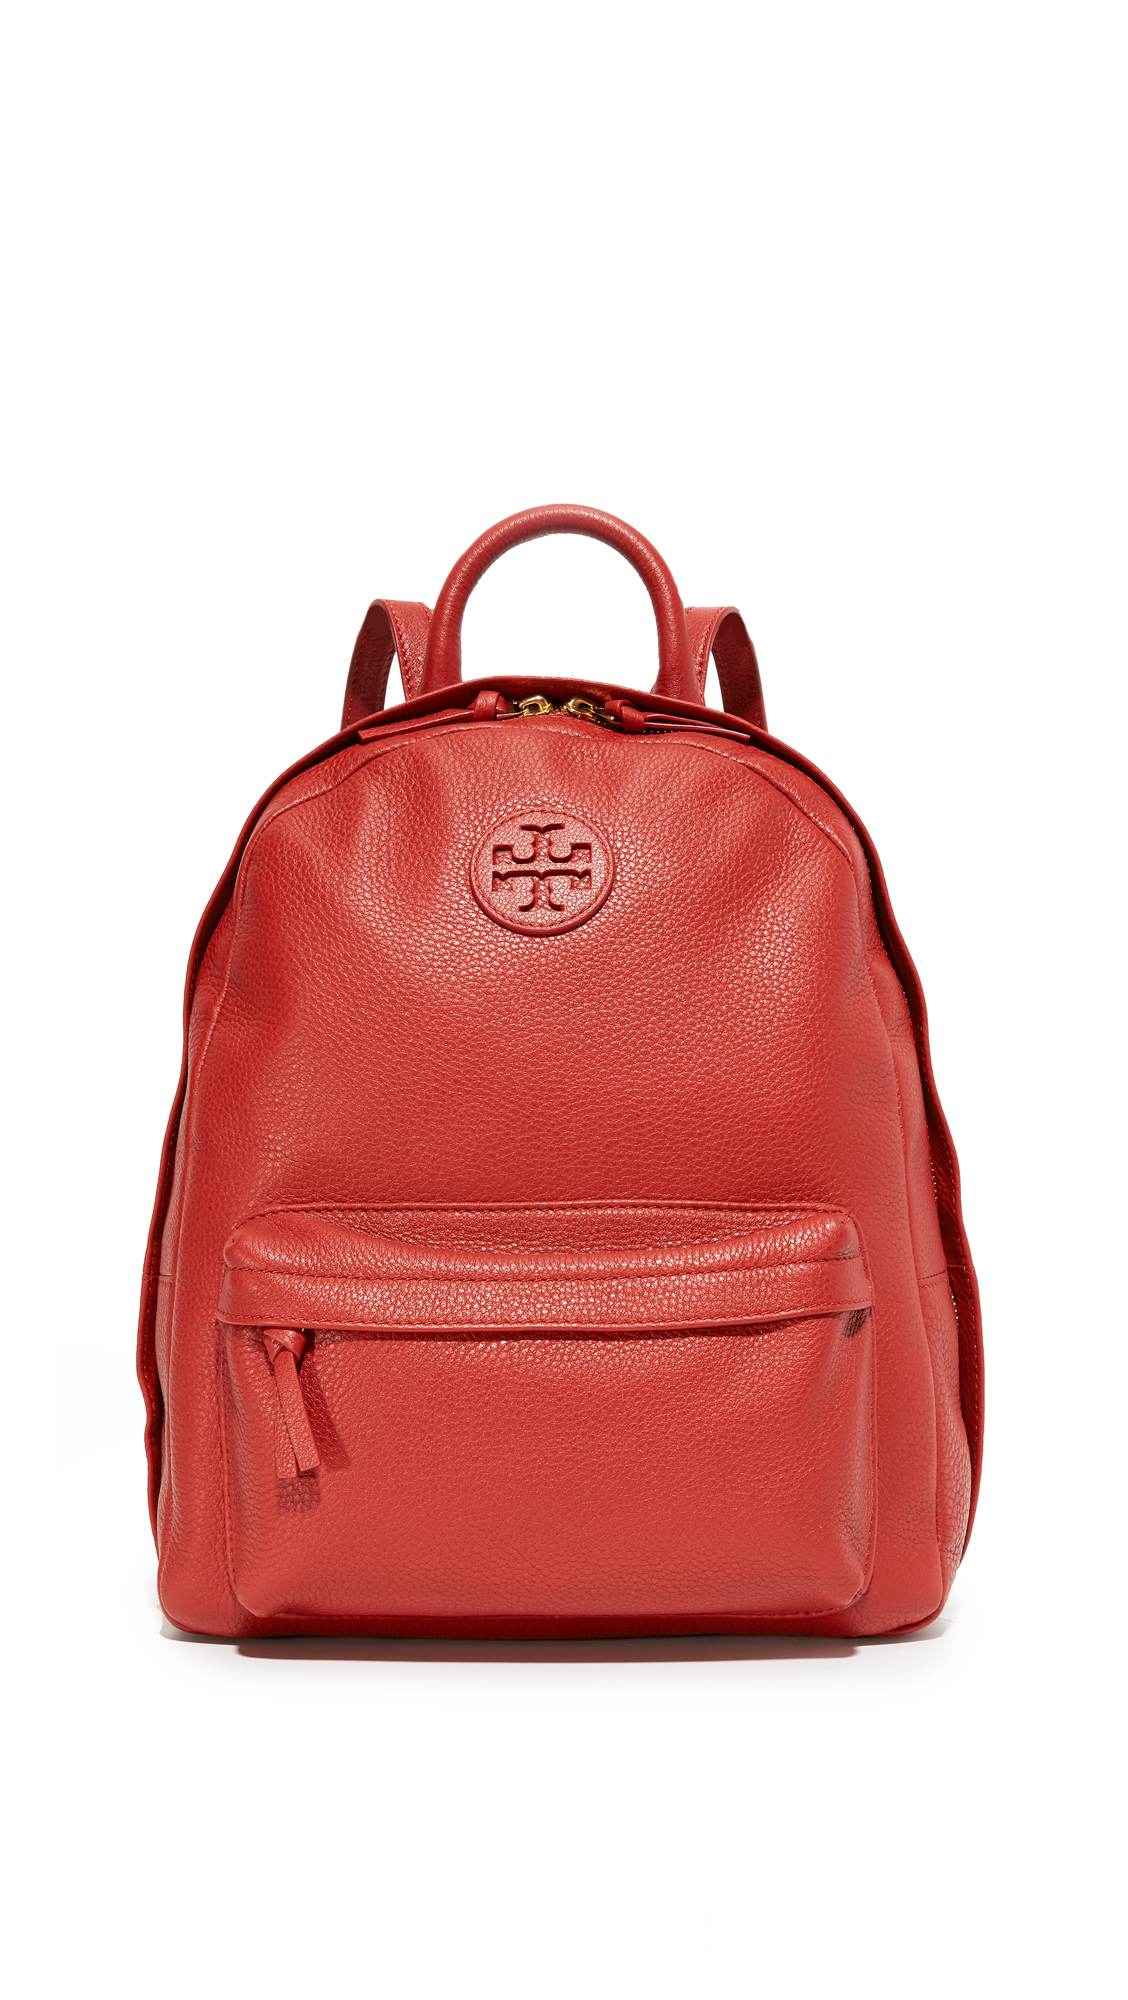 tory burch female tory burch leather backpack light redwood